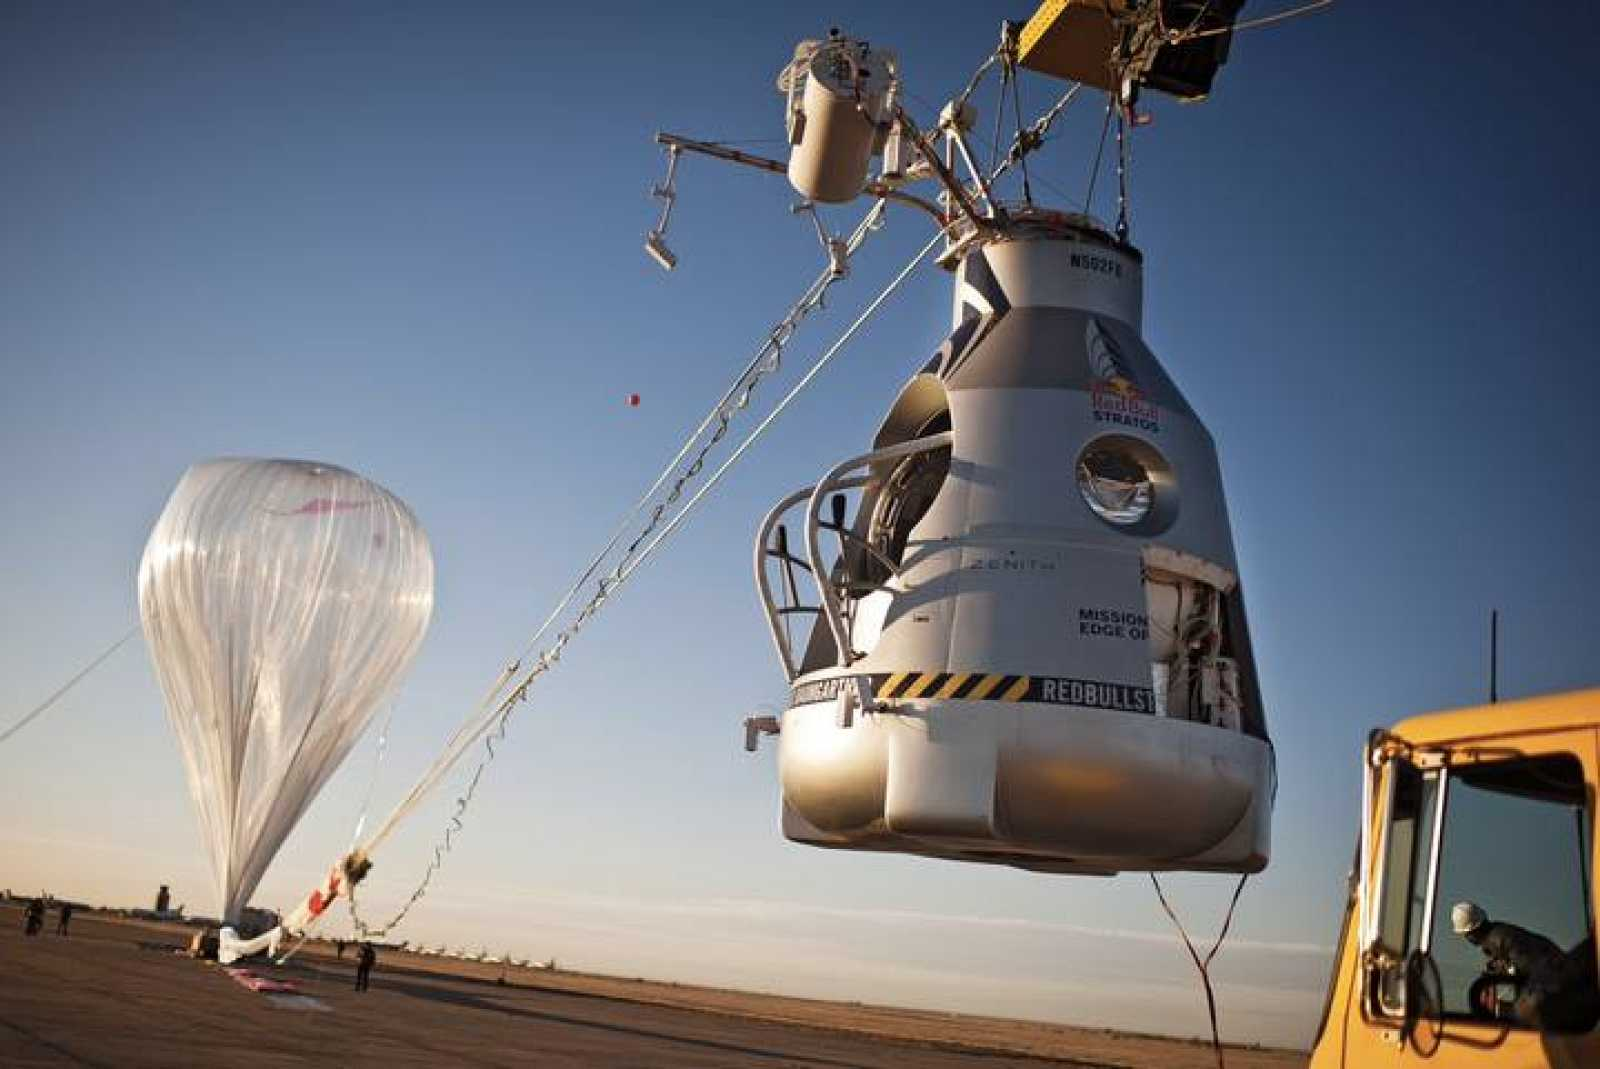 Balloon and capsule - Manned Flight One